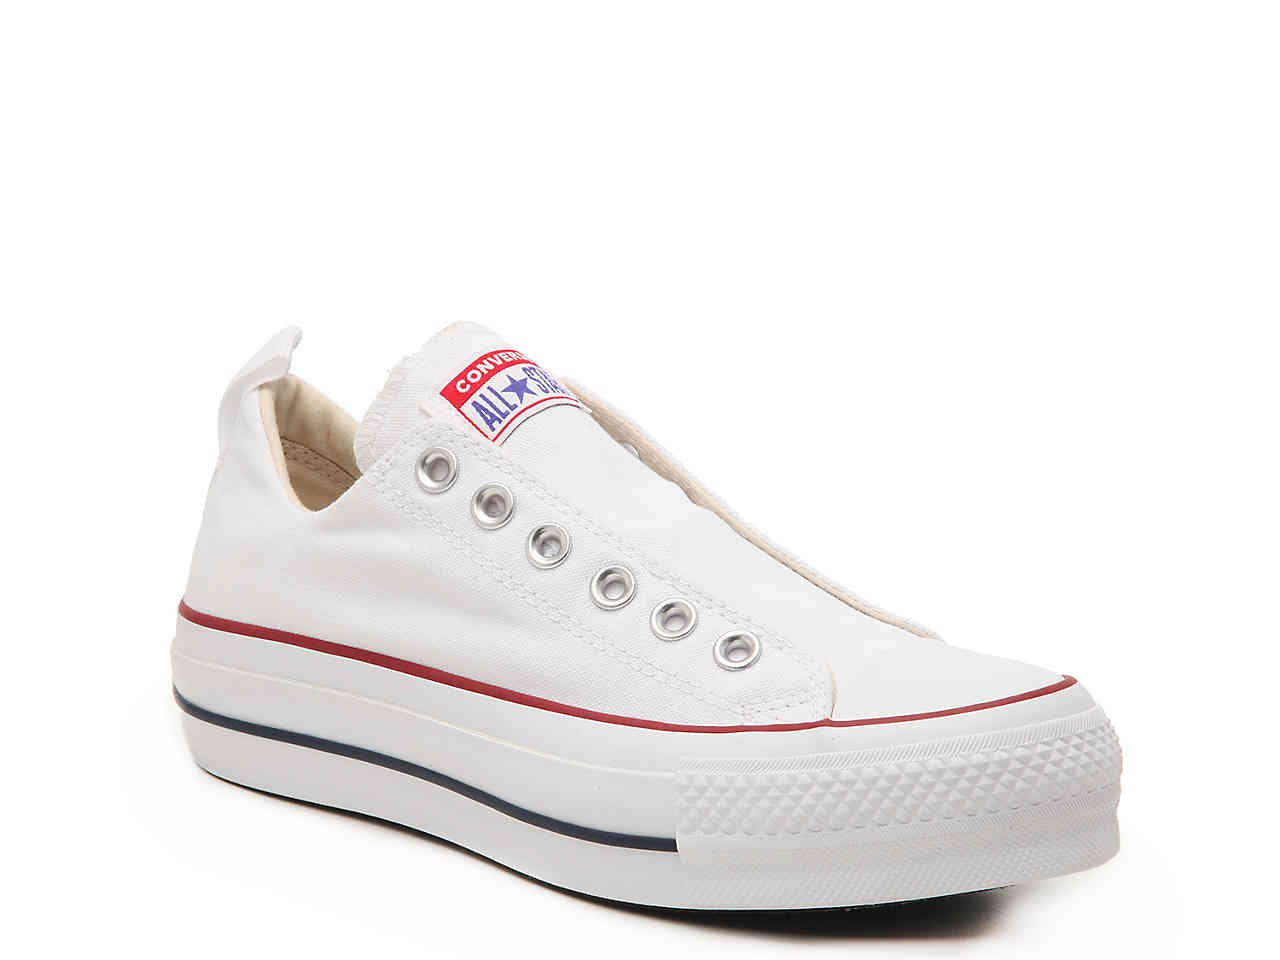 Converse Chuck Taylor All Star Platform Slip-On Sneaker - Women's Women's Shoes | DSW